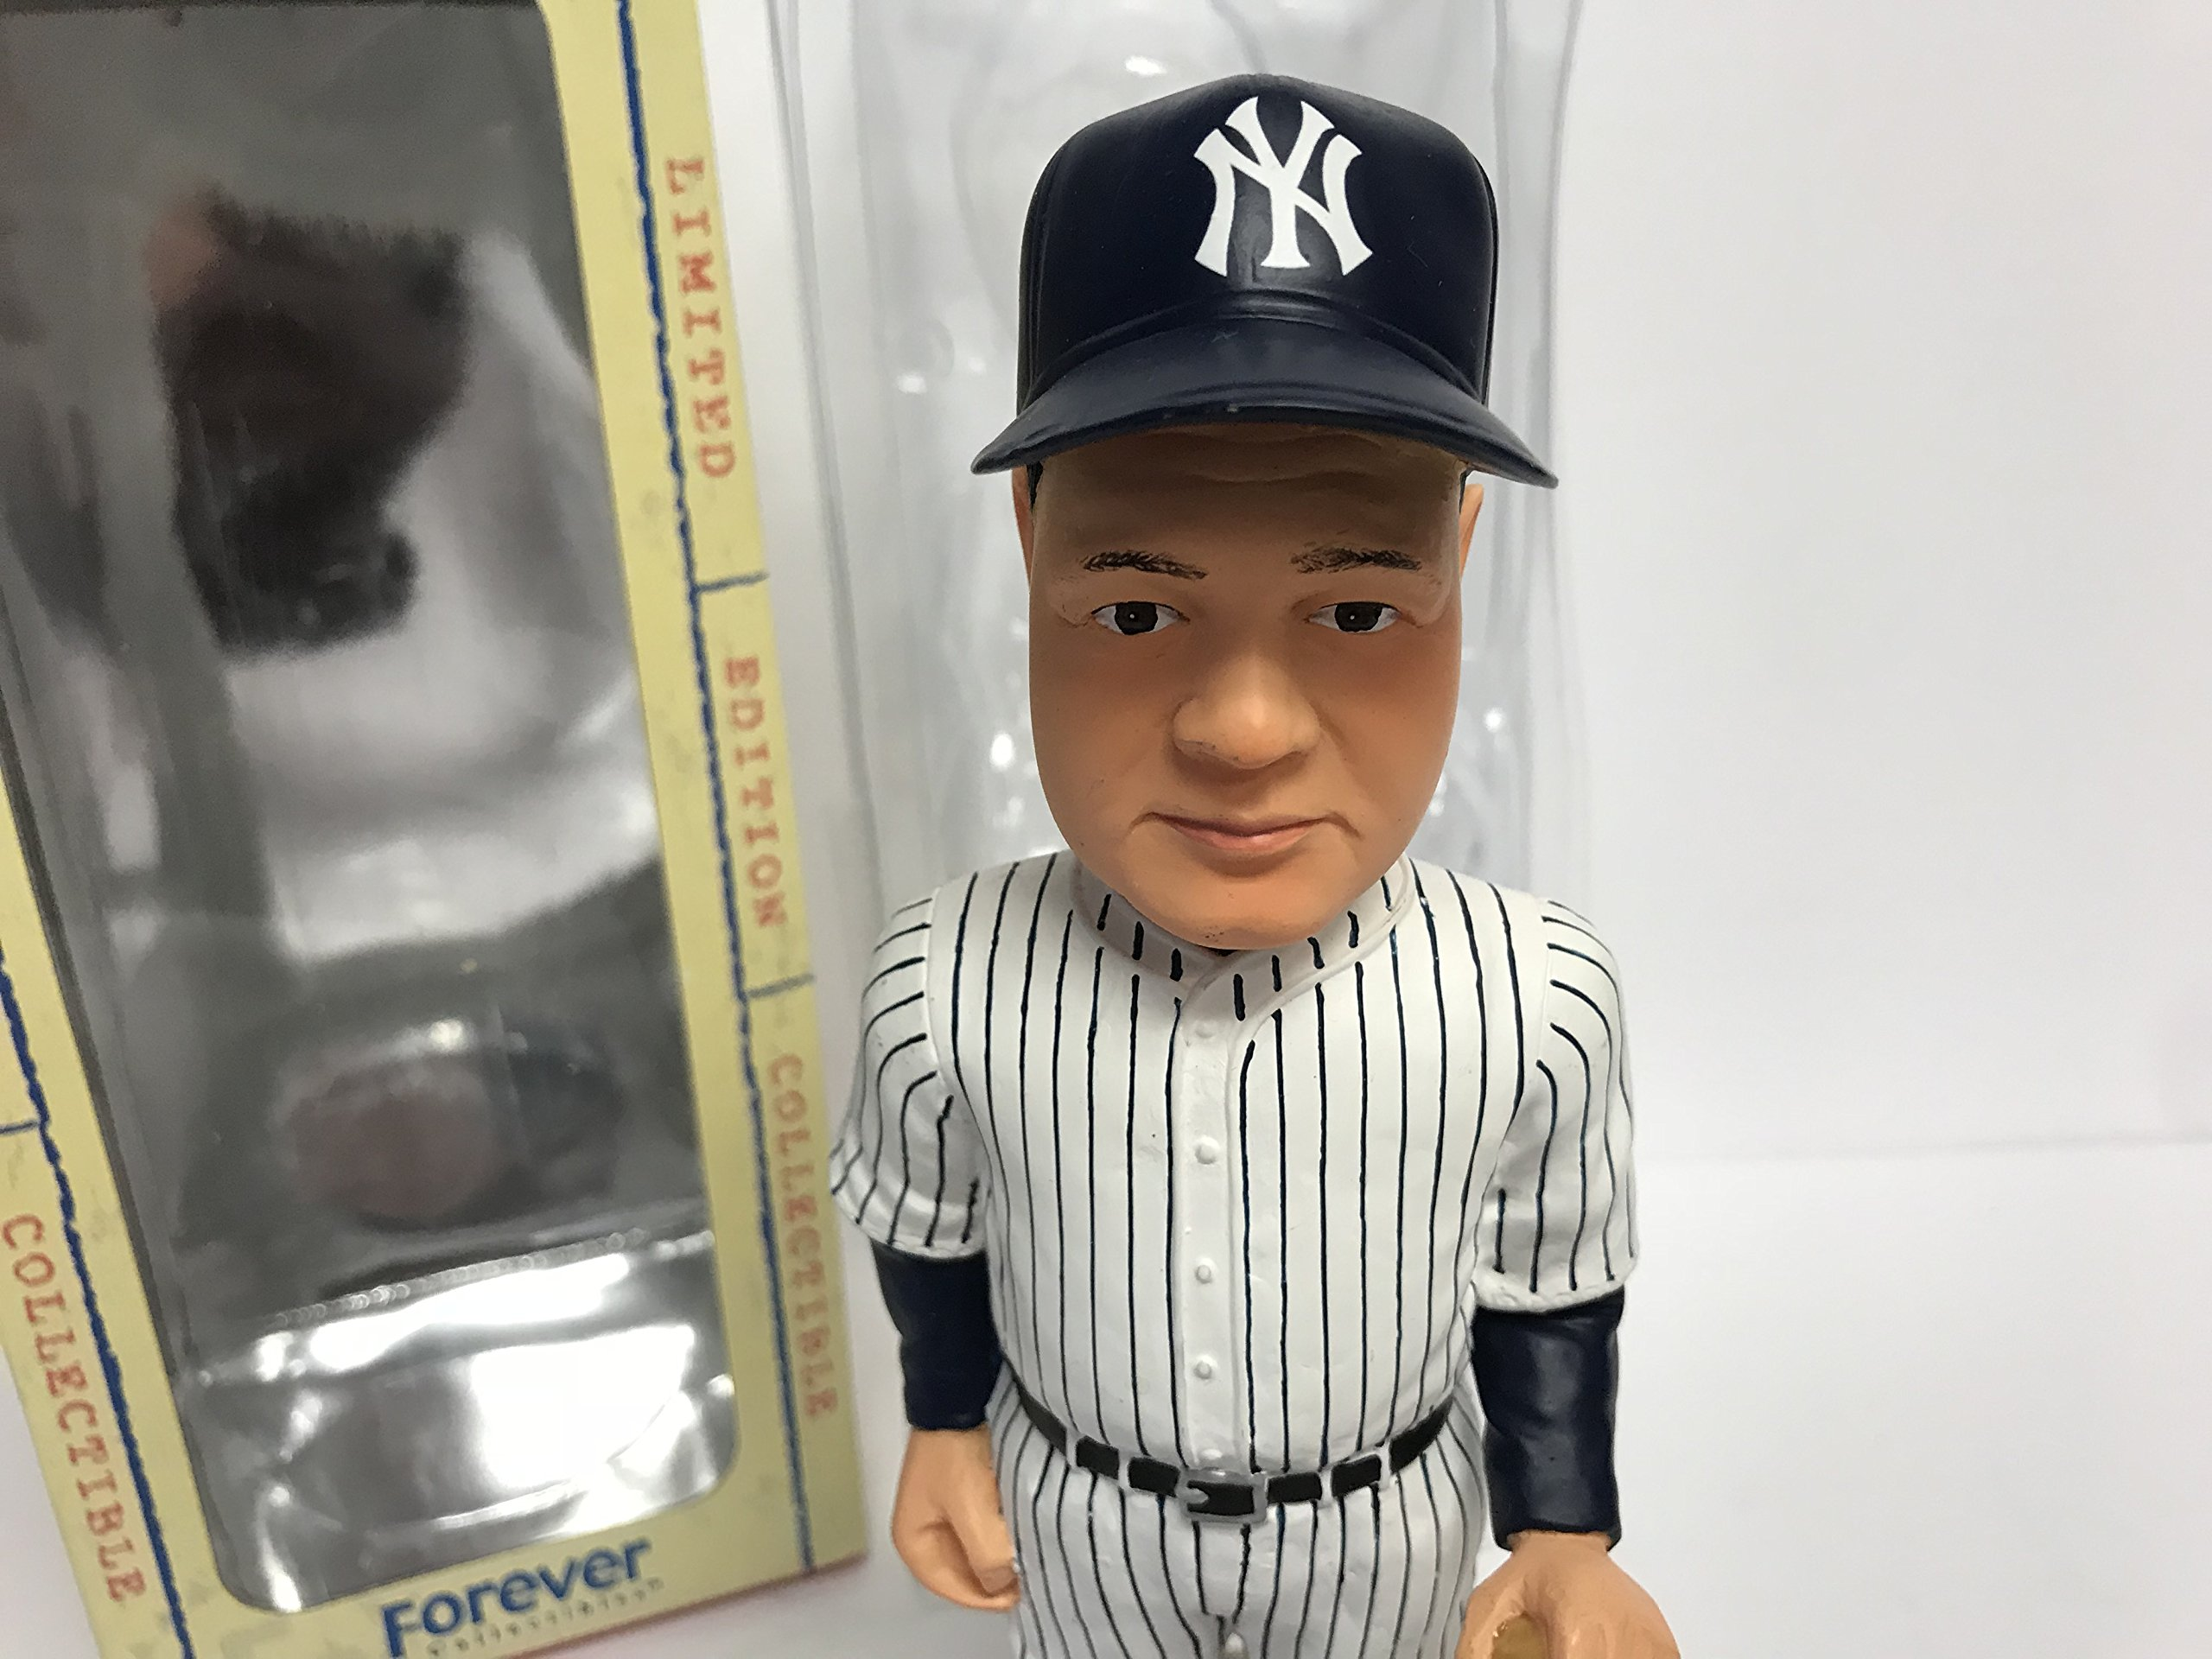 Babe Ruth (pinstripes) New York Yankees Legends of the Park Cooperstown LIMITED EDITION Bobblehead